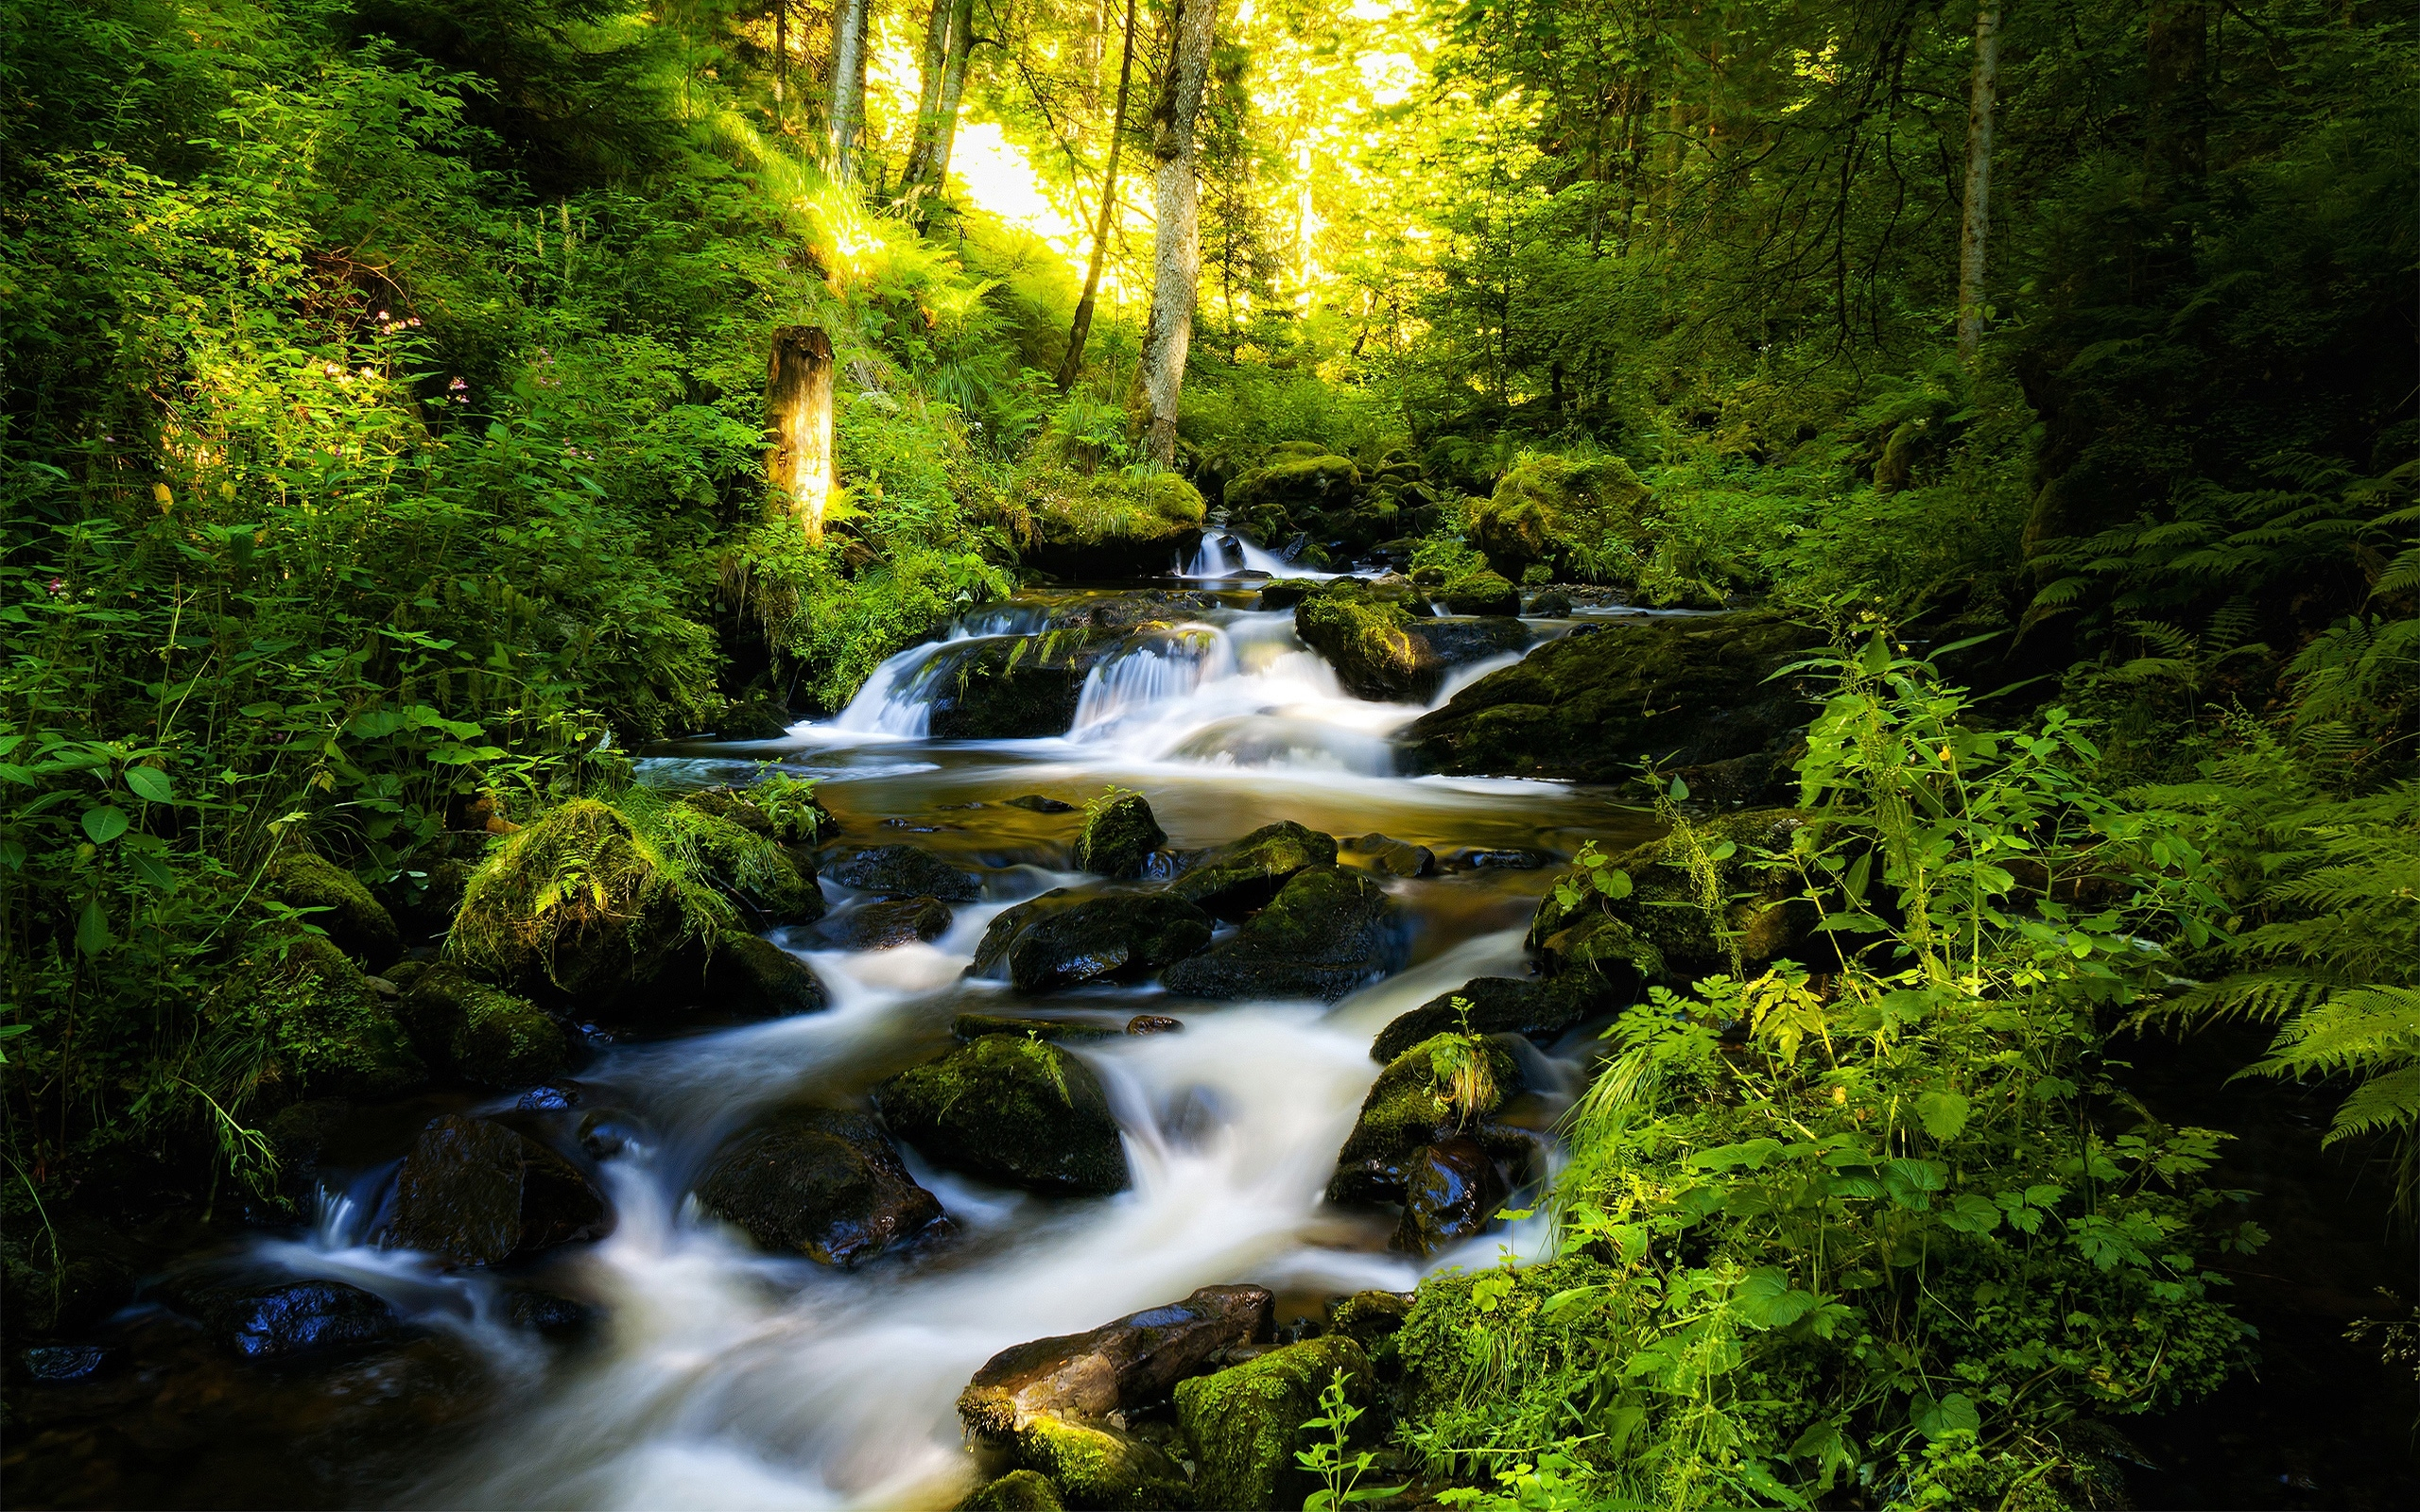 Forest clipart water stream Clipart photo wallpaper in Mountain